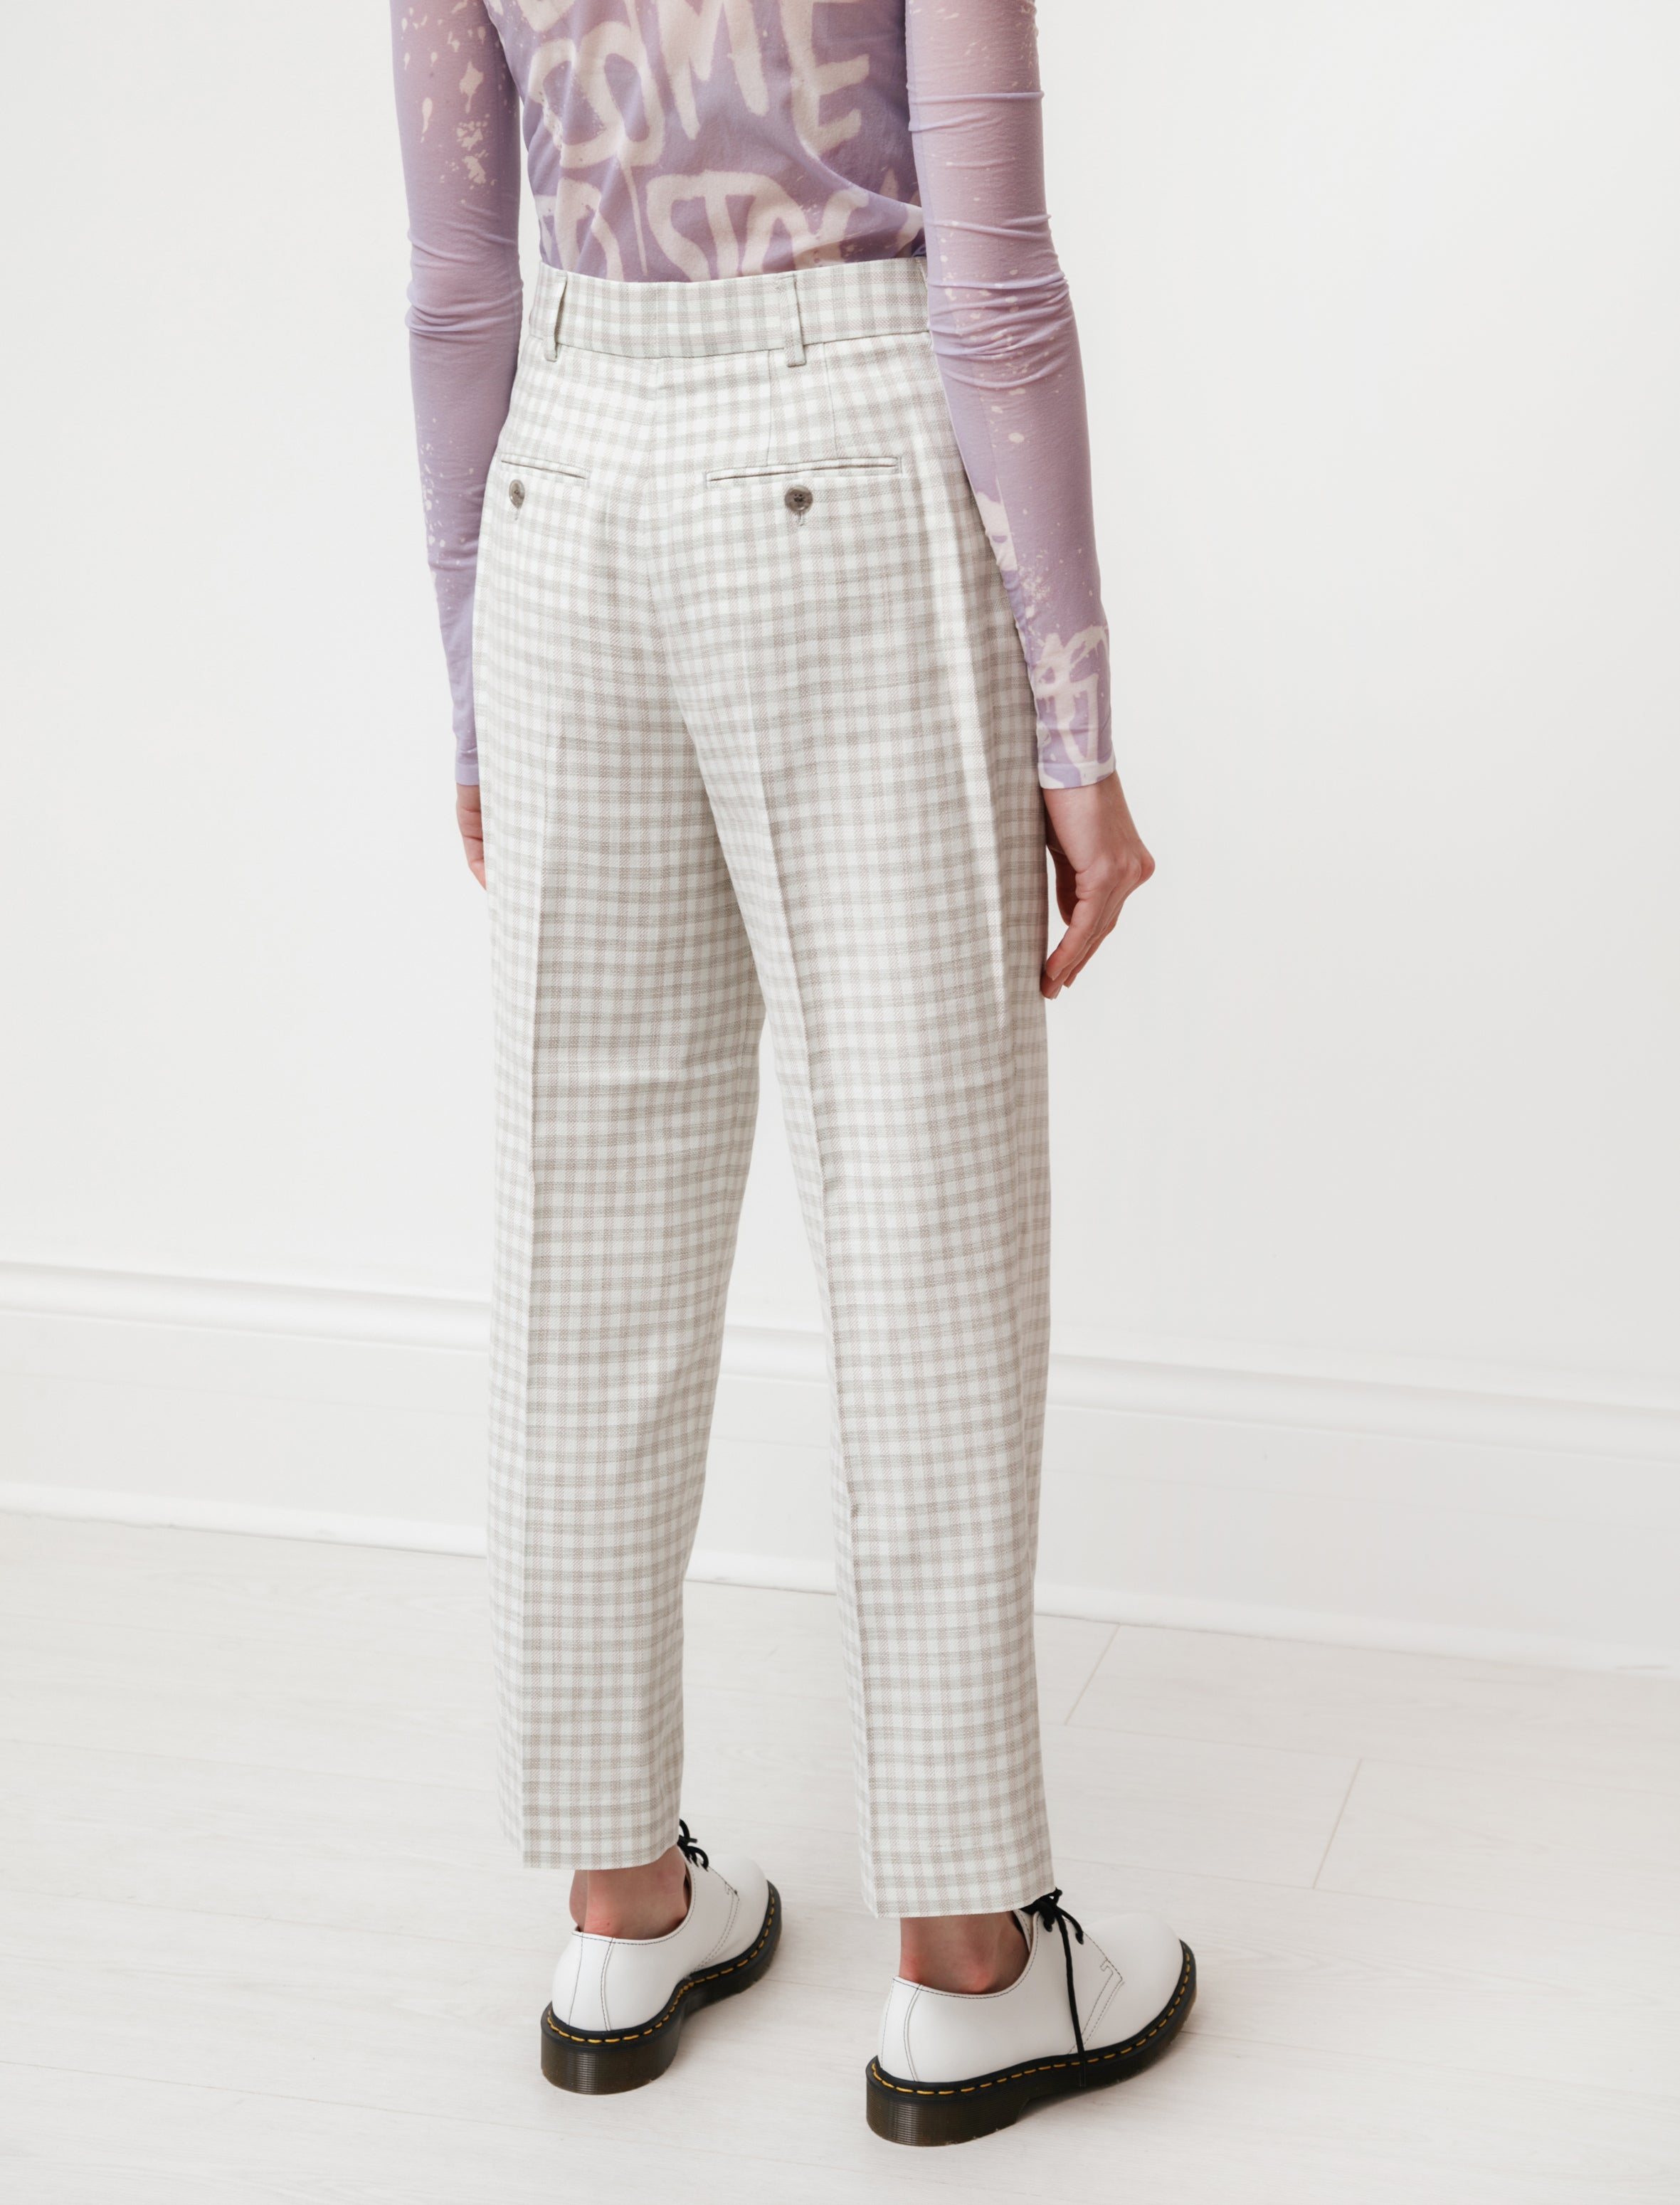 Acne Studios Loose Pleated Trousers Green/Grey Plaid